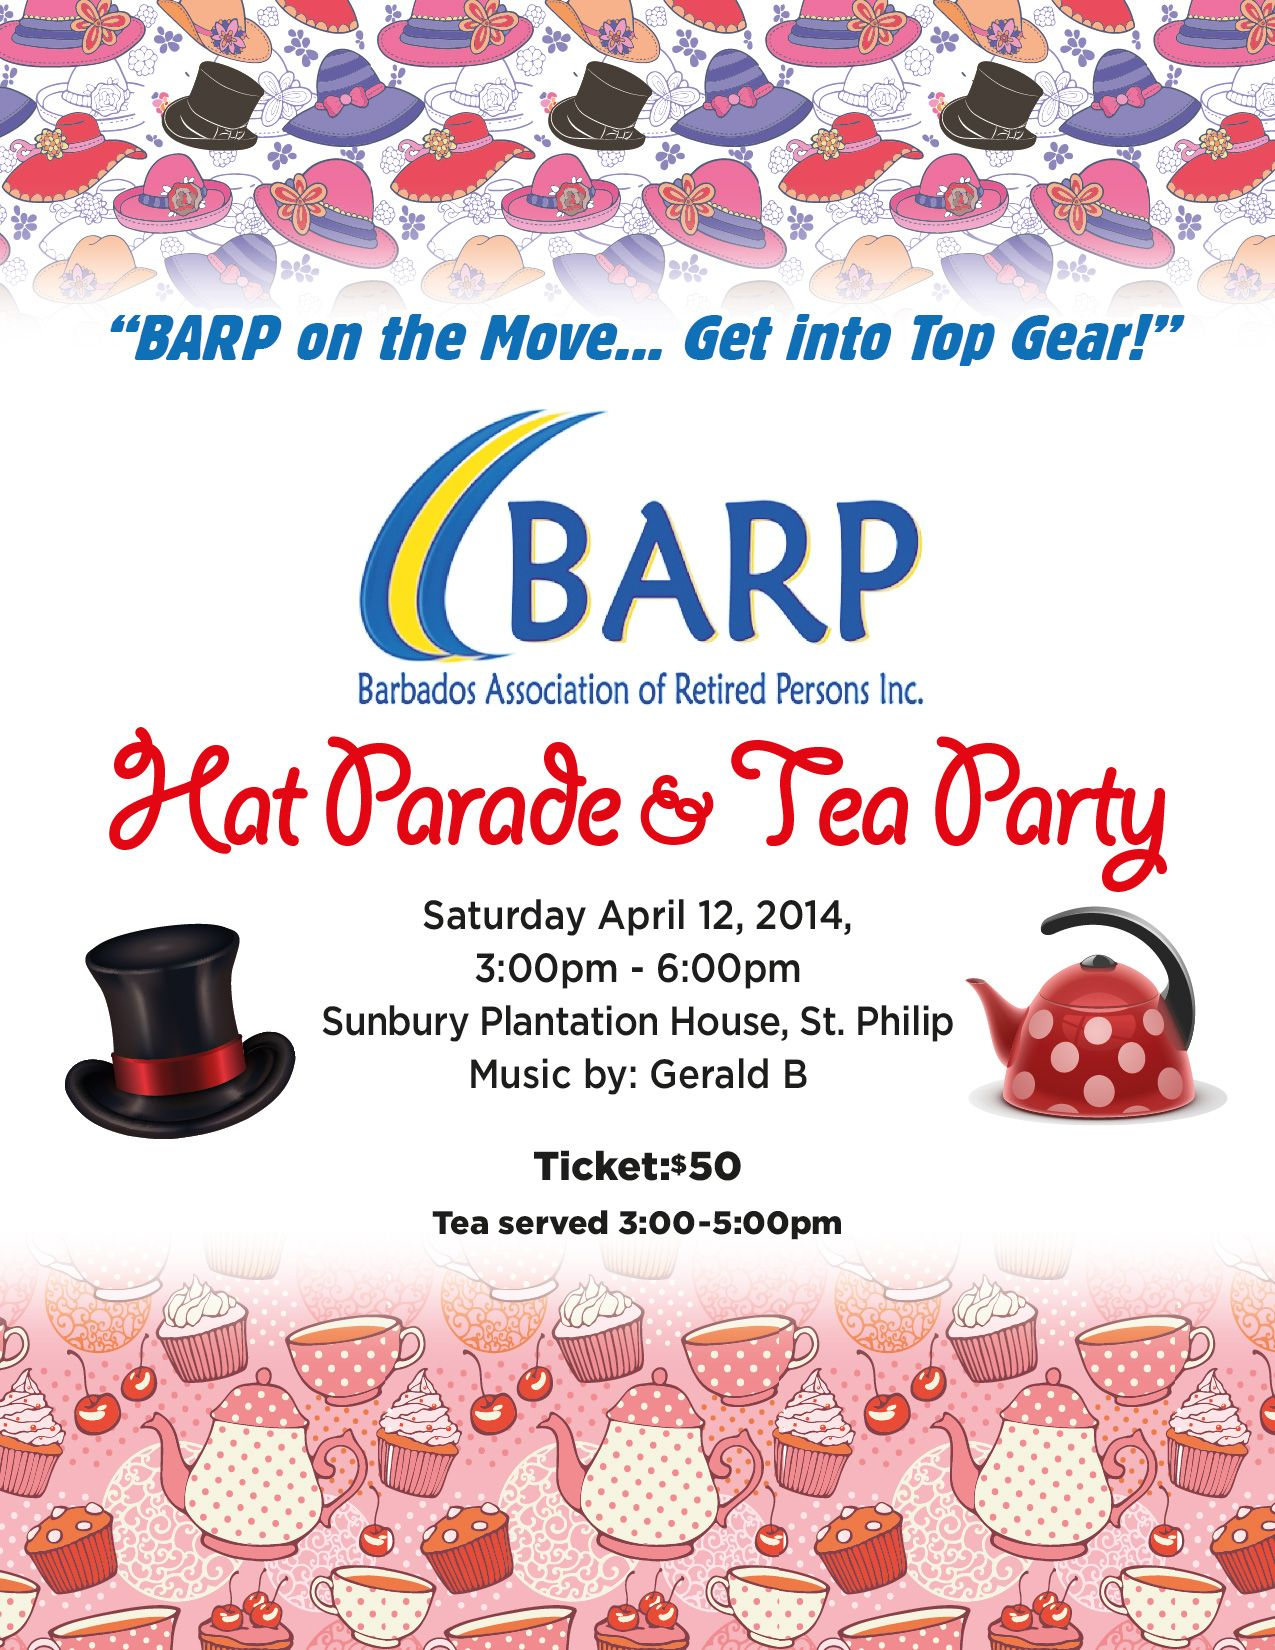 BARP-hat-parade-tea-party-2014-flyer